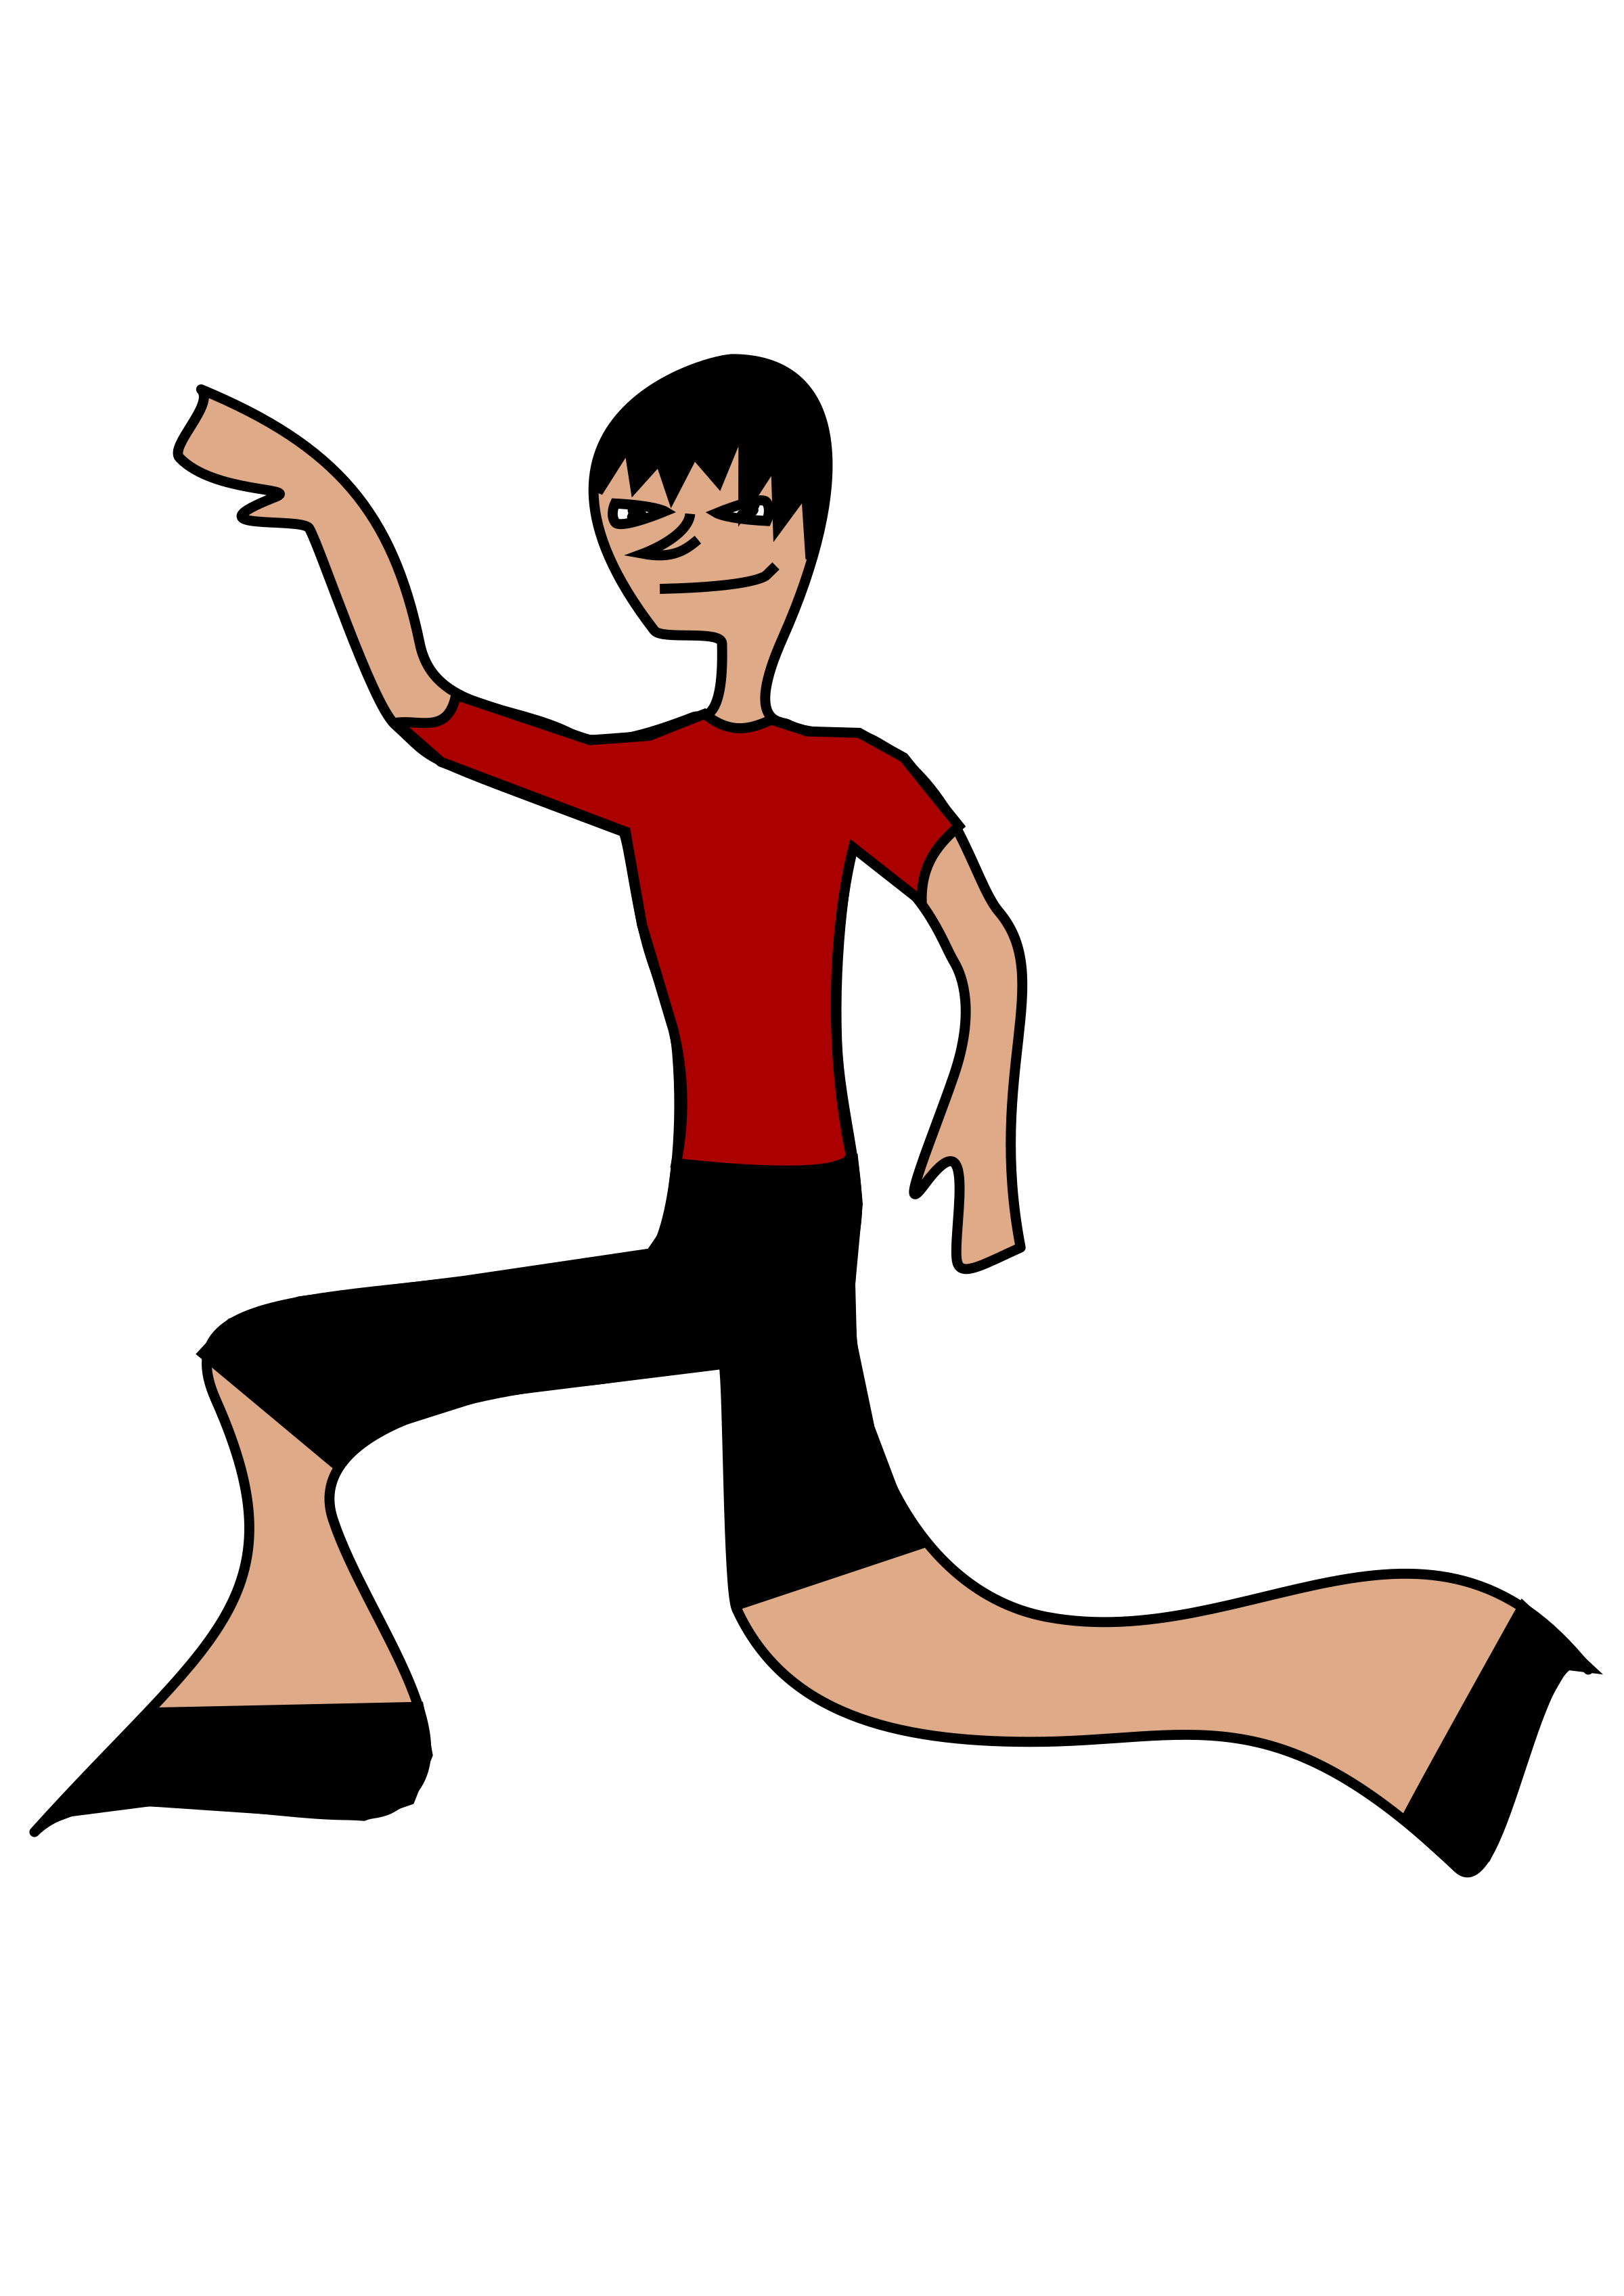 Germs clipart dancing. Guy icons png free